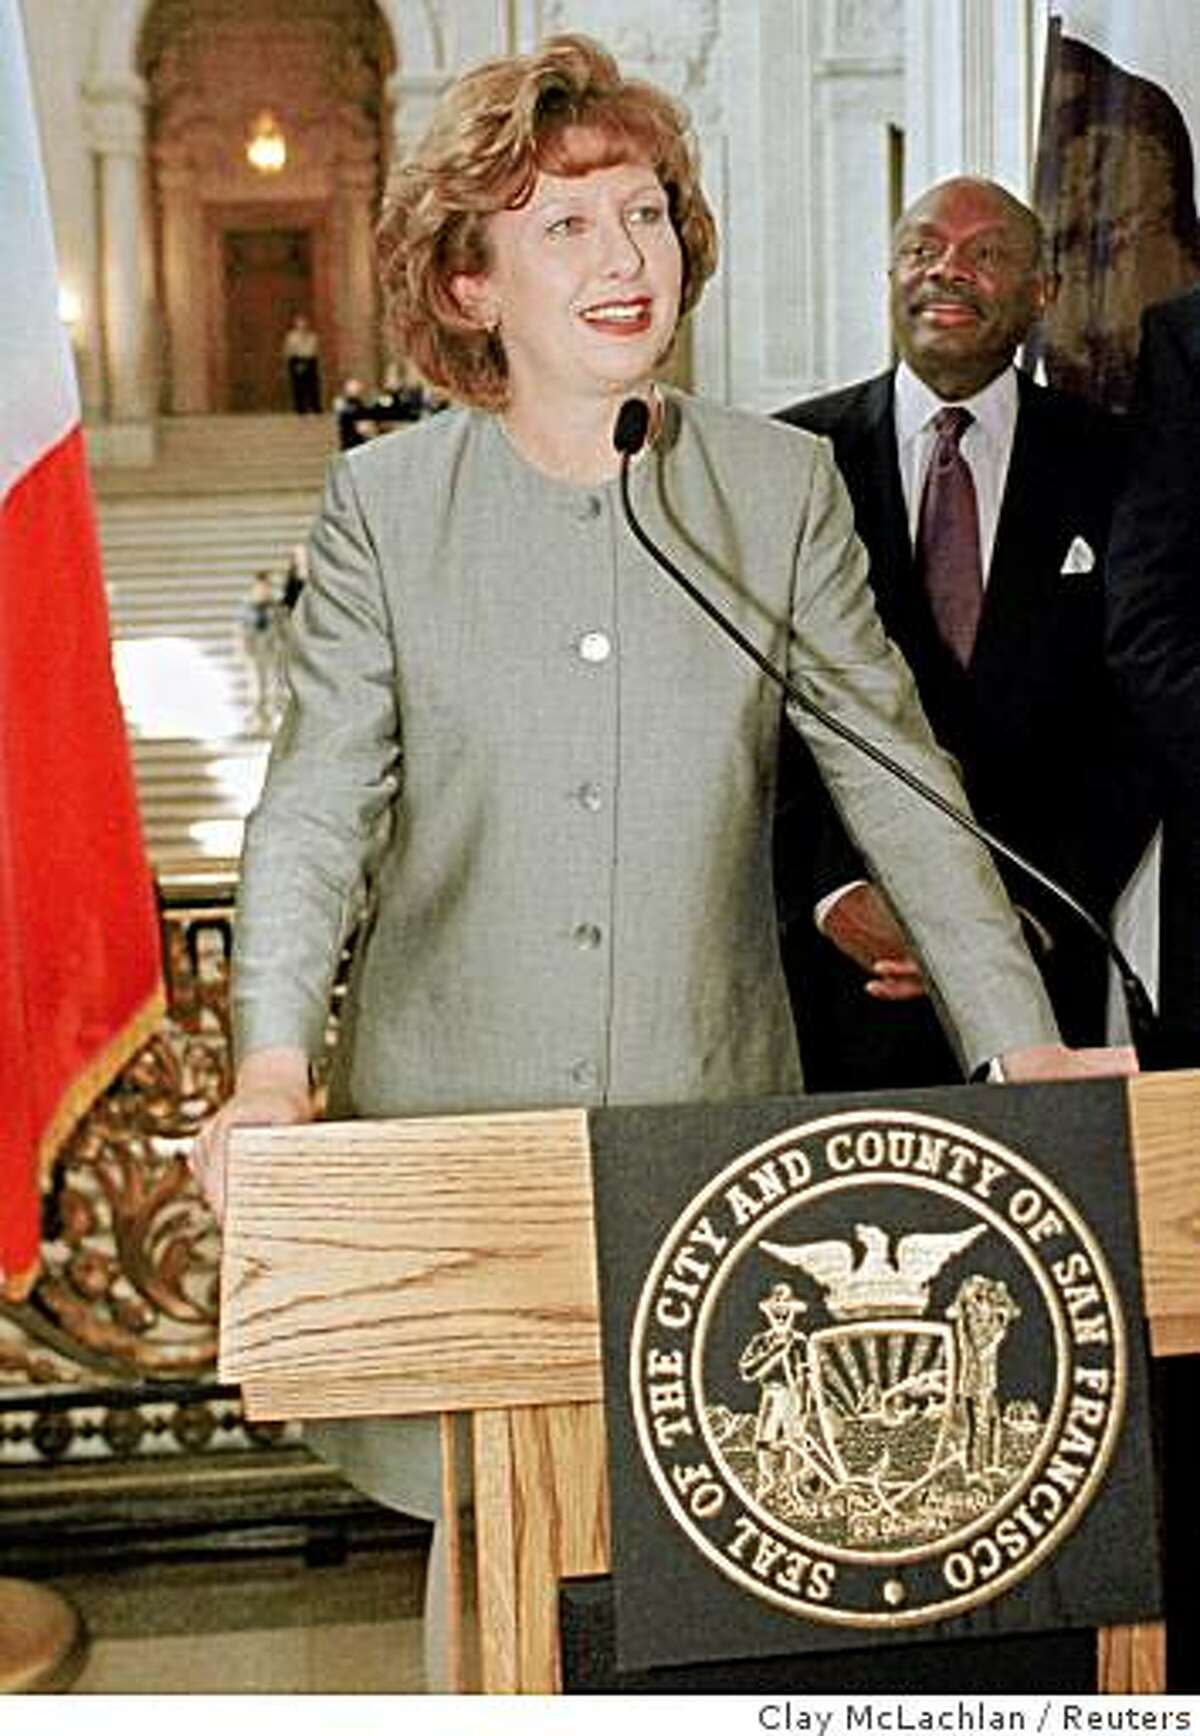 SAF01:MCALEESE-IRELAND:SAN FRANCISCO,21SEP99 - Mary McAleese (L), president of the Republic of Ireland, addresses guests at San Francisco City Hall, September 21. San Francisco Mayor Willie Brown (R) listens to her talk about her visit. cbm/Photo by Clay McLachlan REUTERS